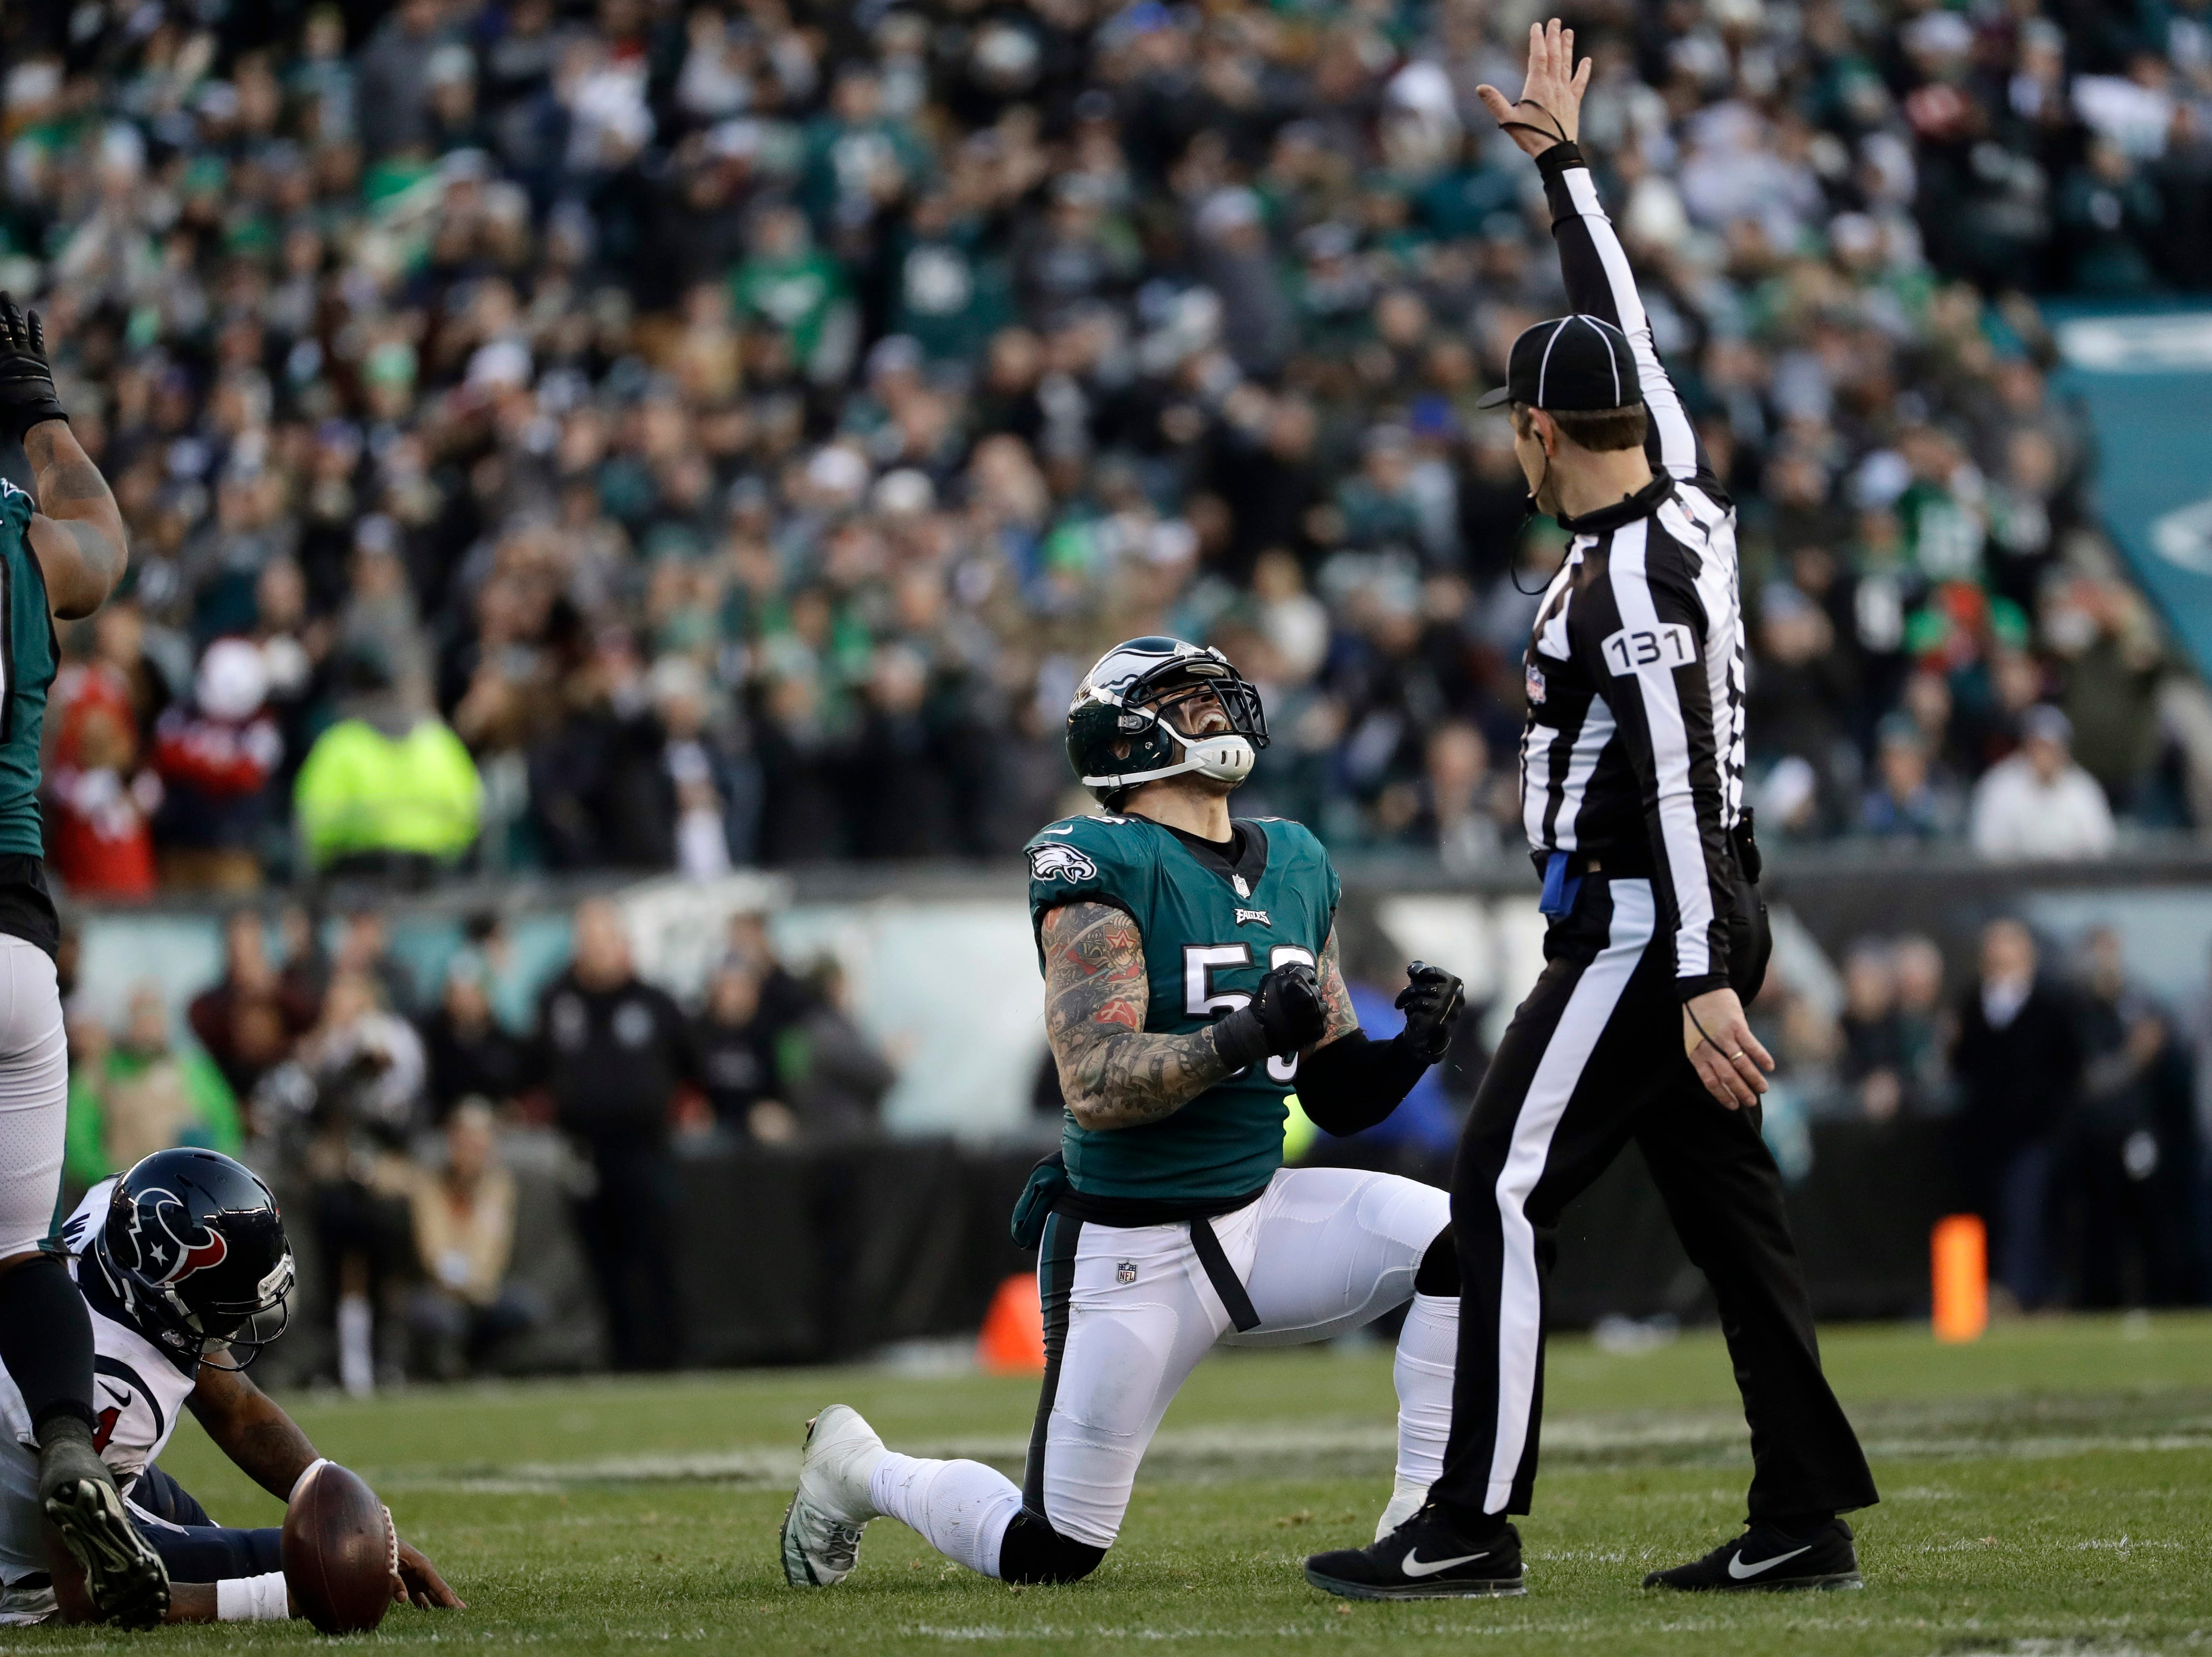 Philadelphia Eagles' Chris Long reacts after a sack during the second half of an NFL football game against the Houston Texans, Sunday, Dec. 23, 2018, in Philadelphia. (AP Photo/Michael Perez)